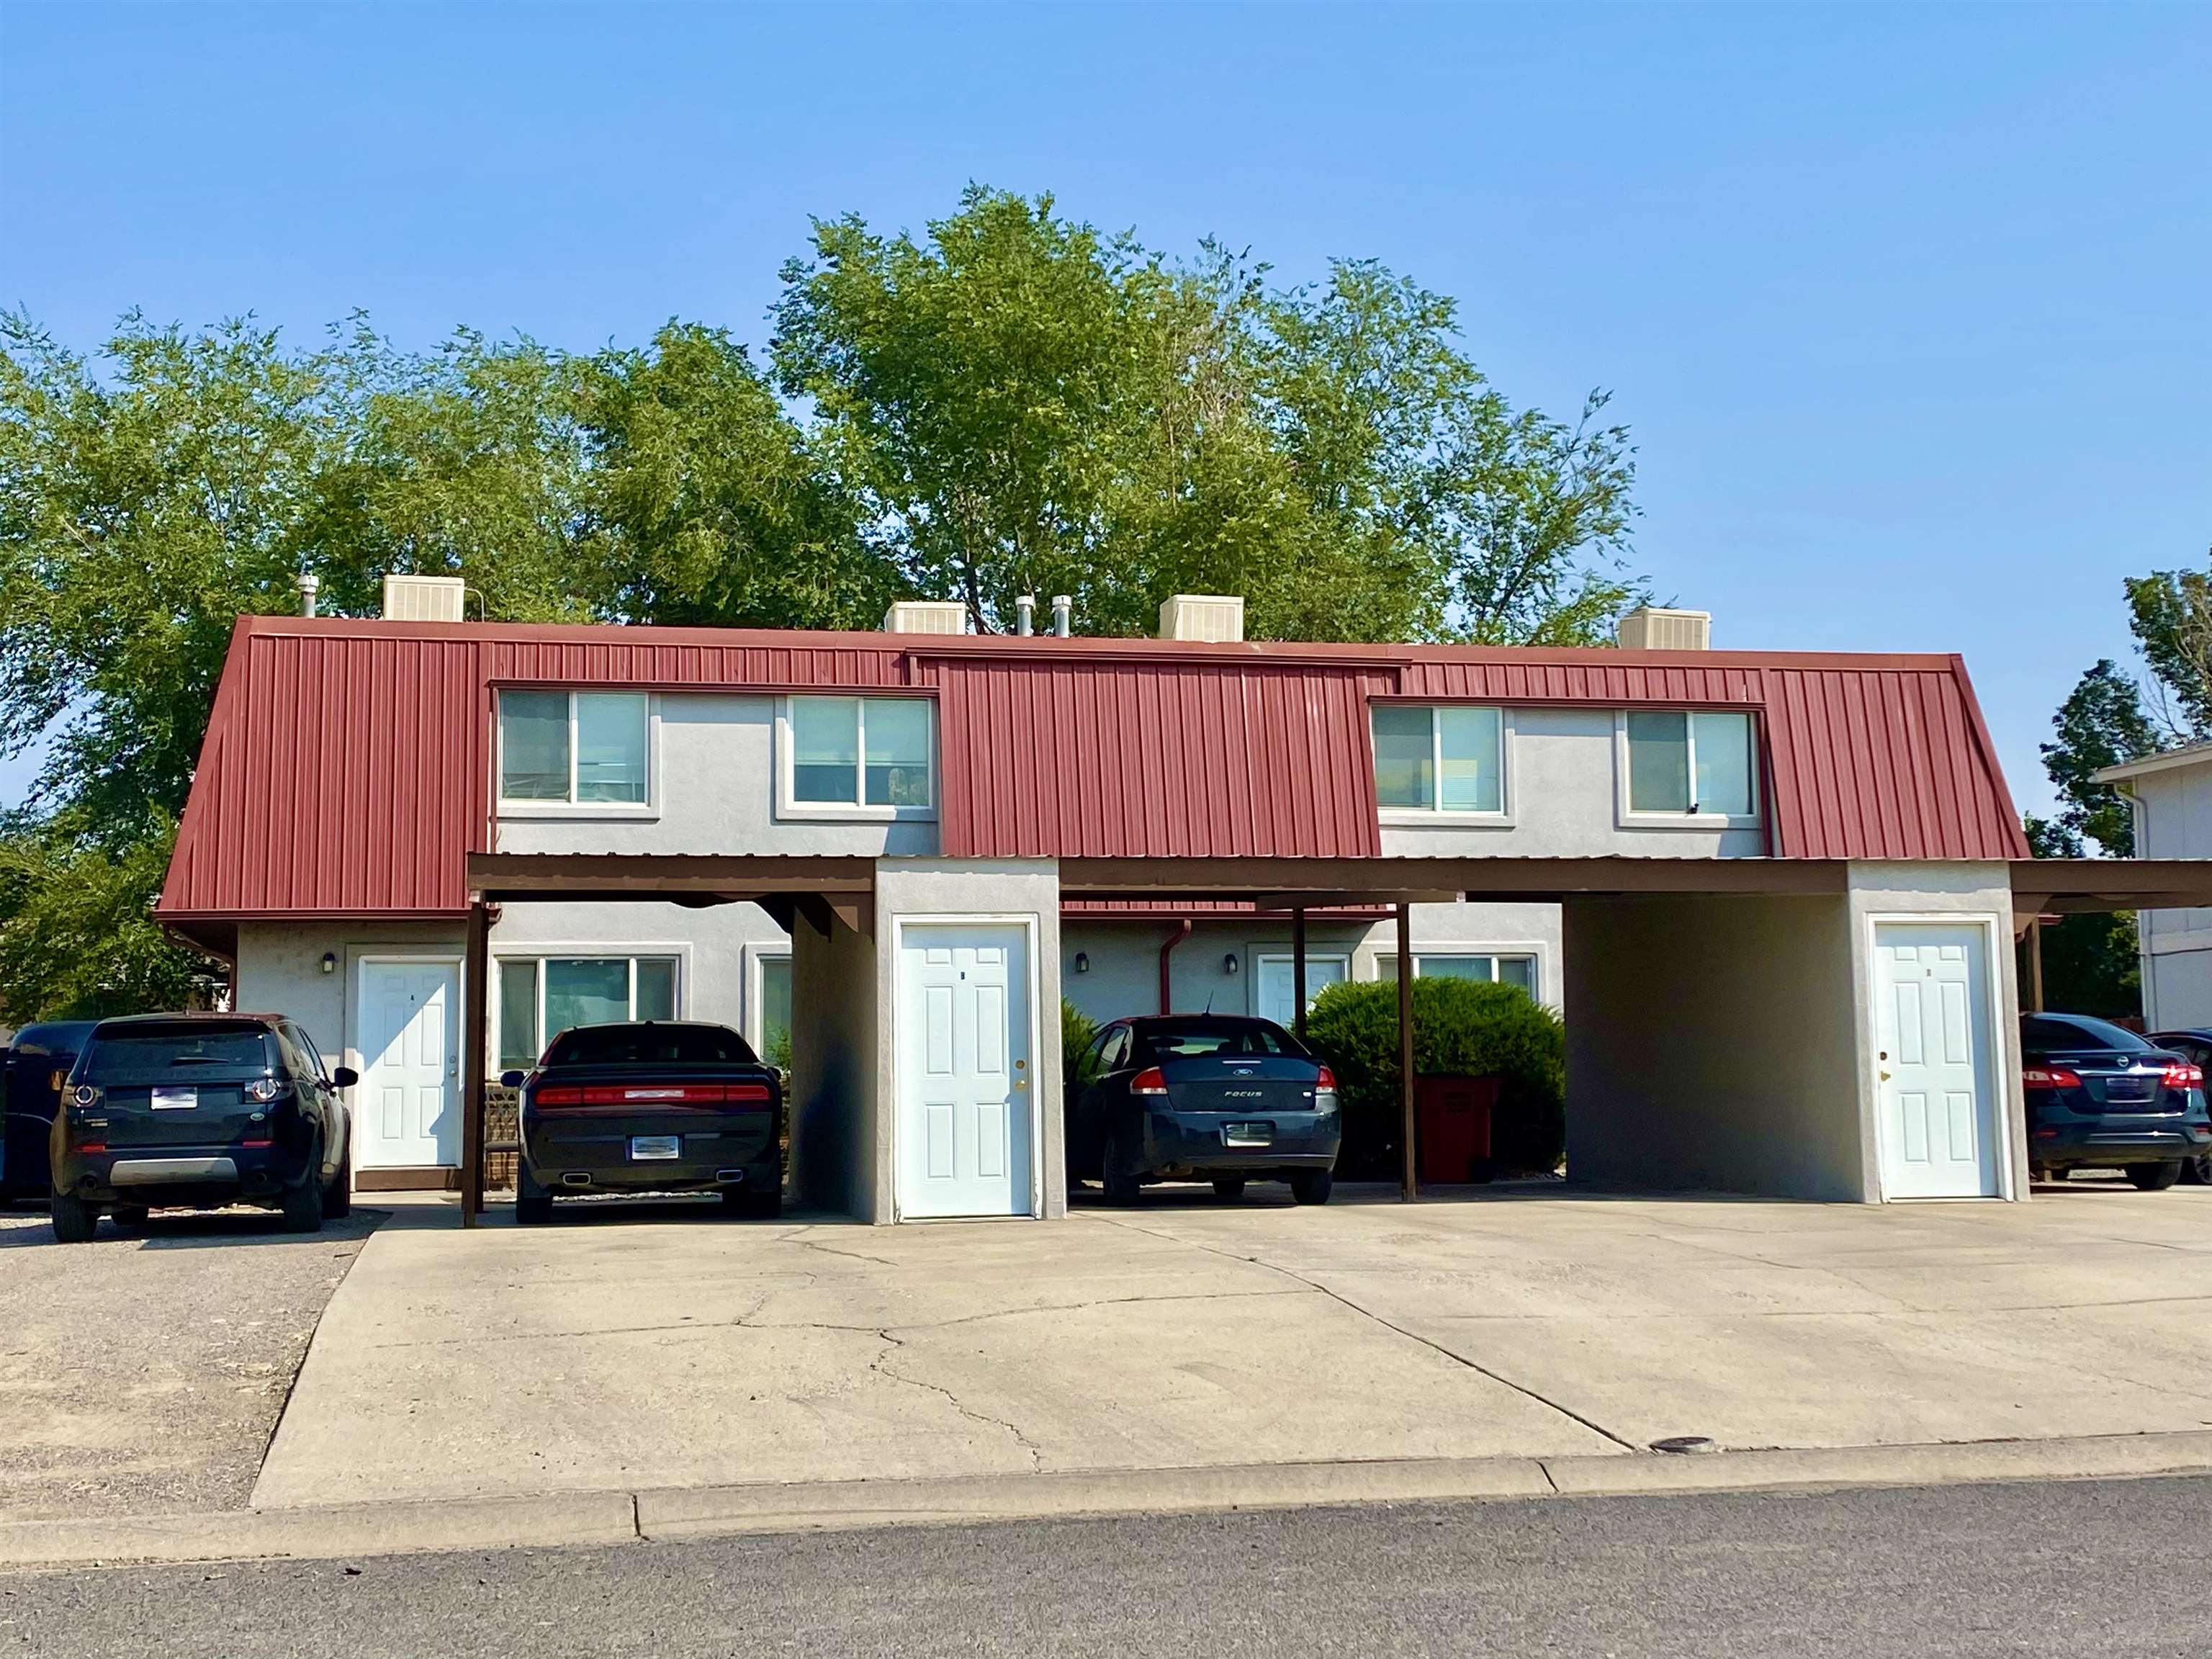 Take advantage of this great investment opportunity! All units are currently rented. The roof was replaced with metal, exterior is stucco and each unit comes with their own storage unit. Each unit has their own private fenced patio and their own carport.  All units have washer/dryer hookups. Currently tenants pay electric & gas, and have separate meters for billing convenience; owner pays for water/sewer and trash.